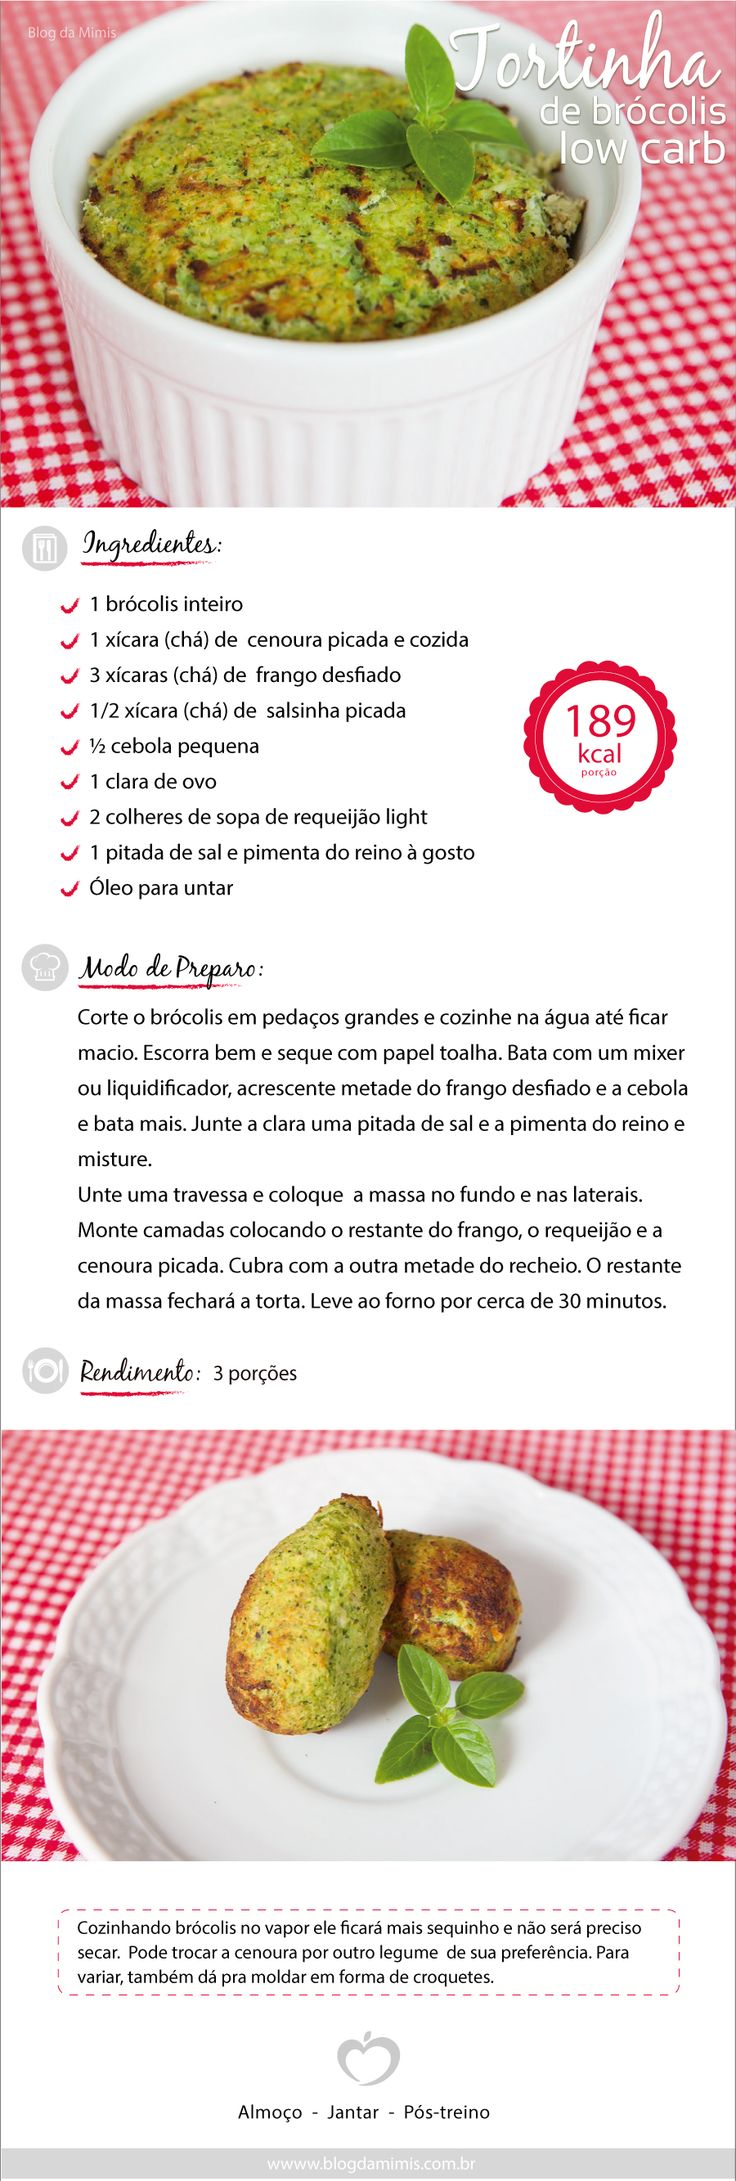 Tortinha de brócolis low carb